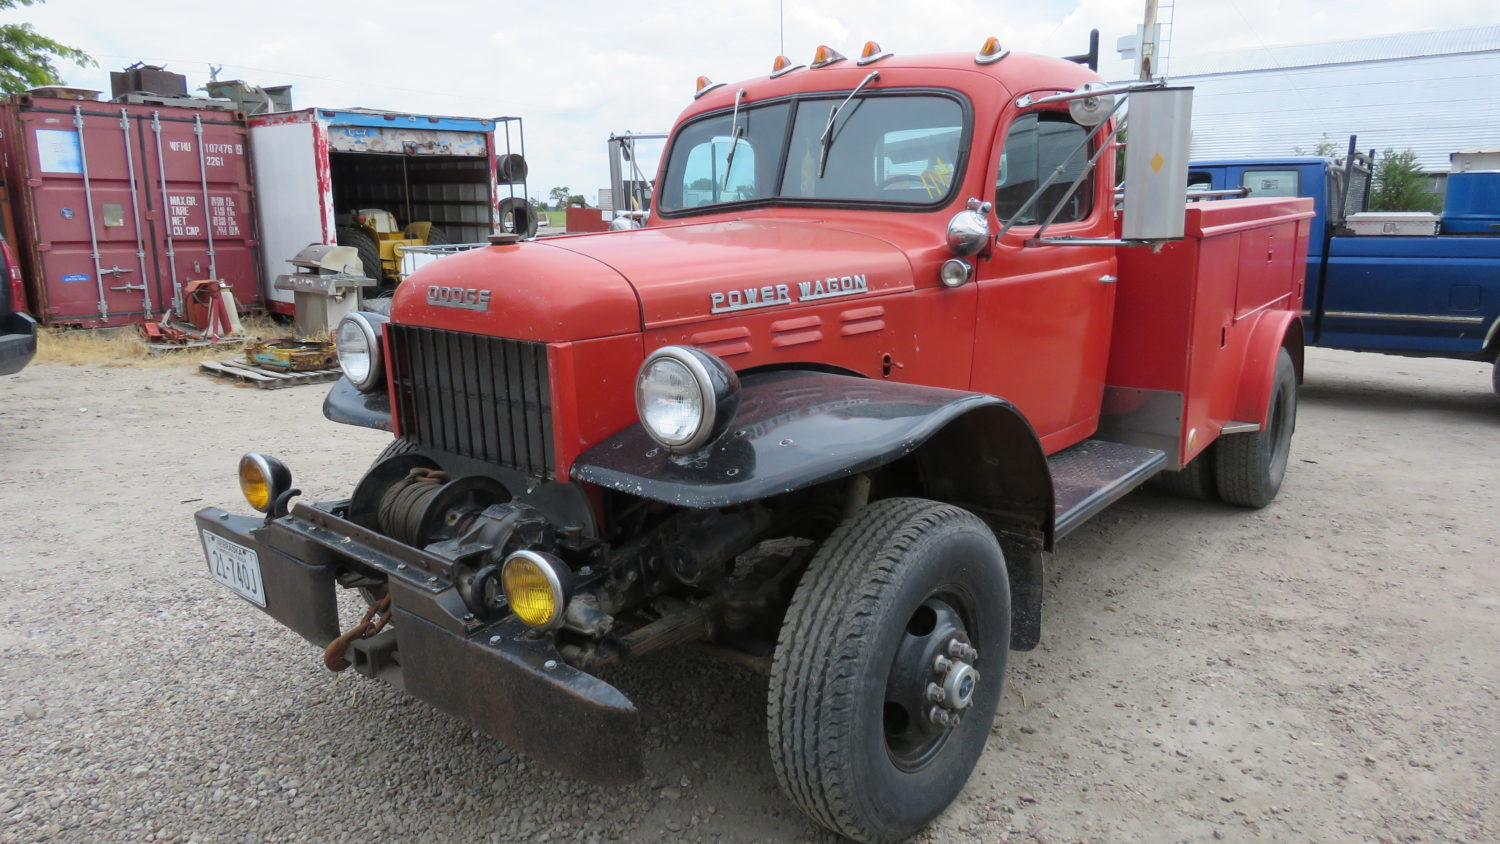 Appox 200 collector cars & trucks! The Eich & Friends Collection Auction - image 2